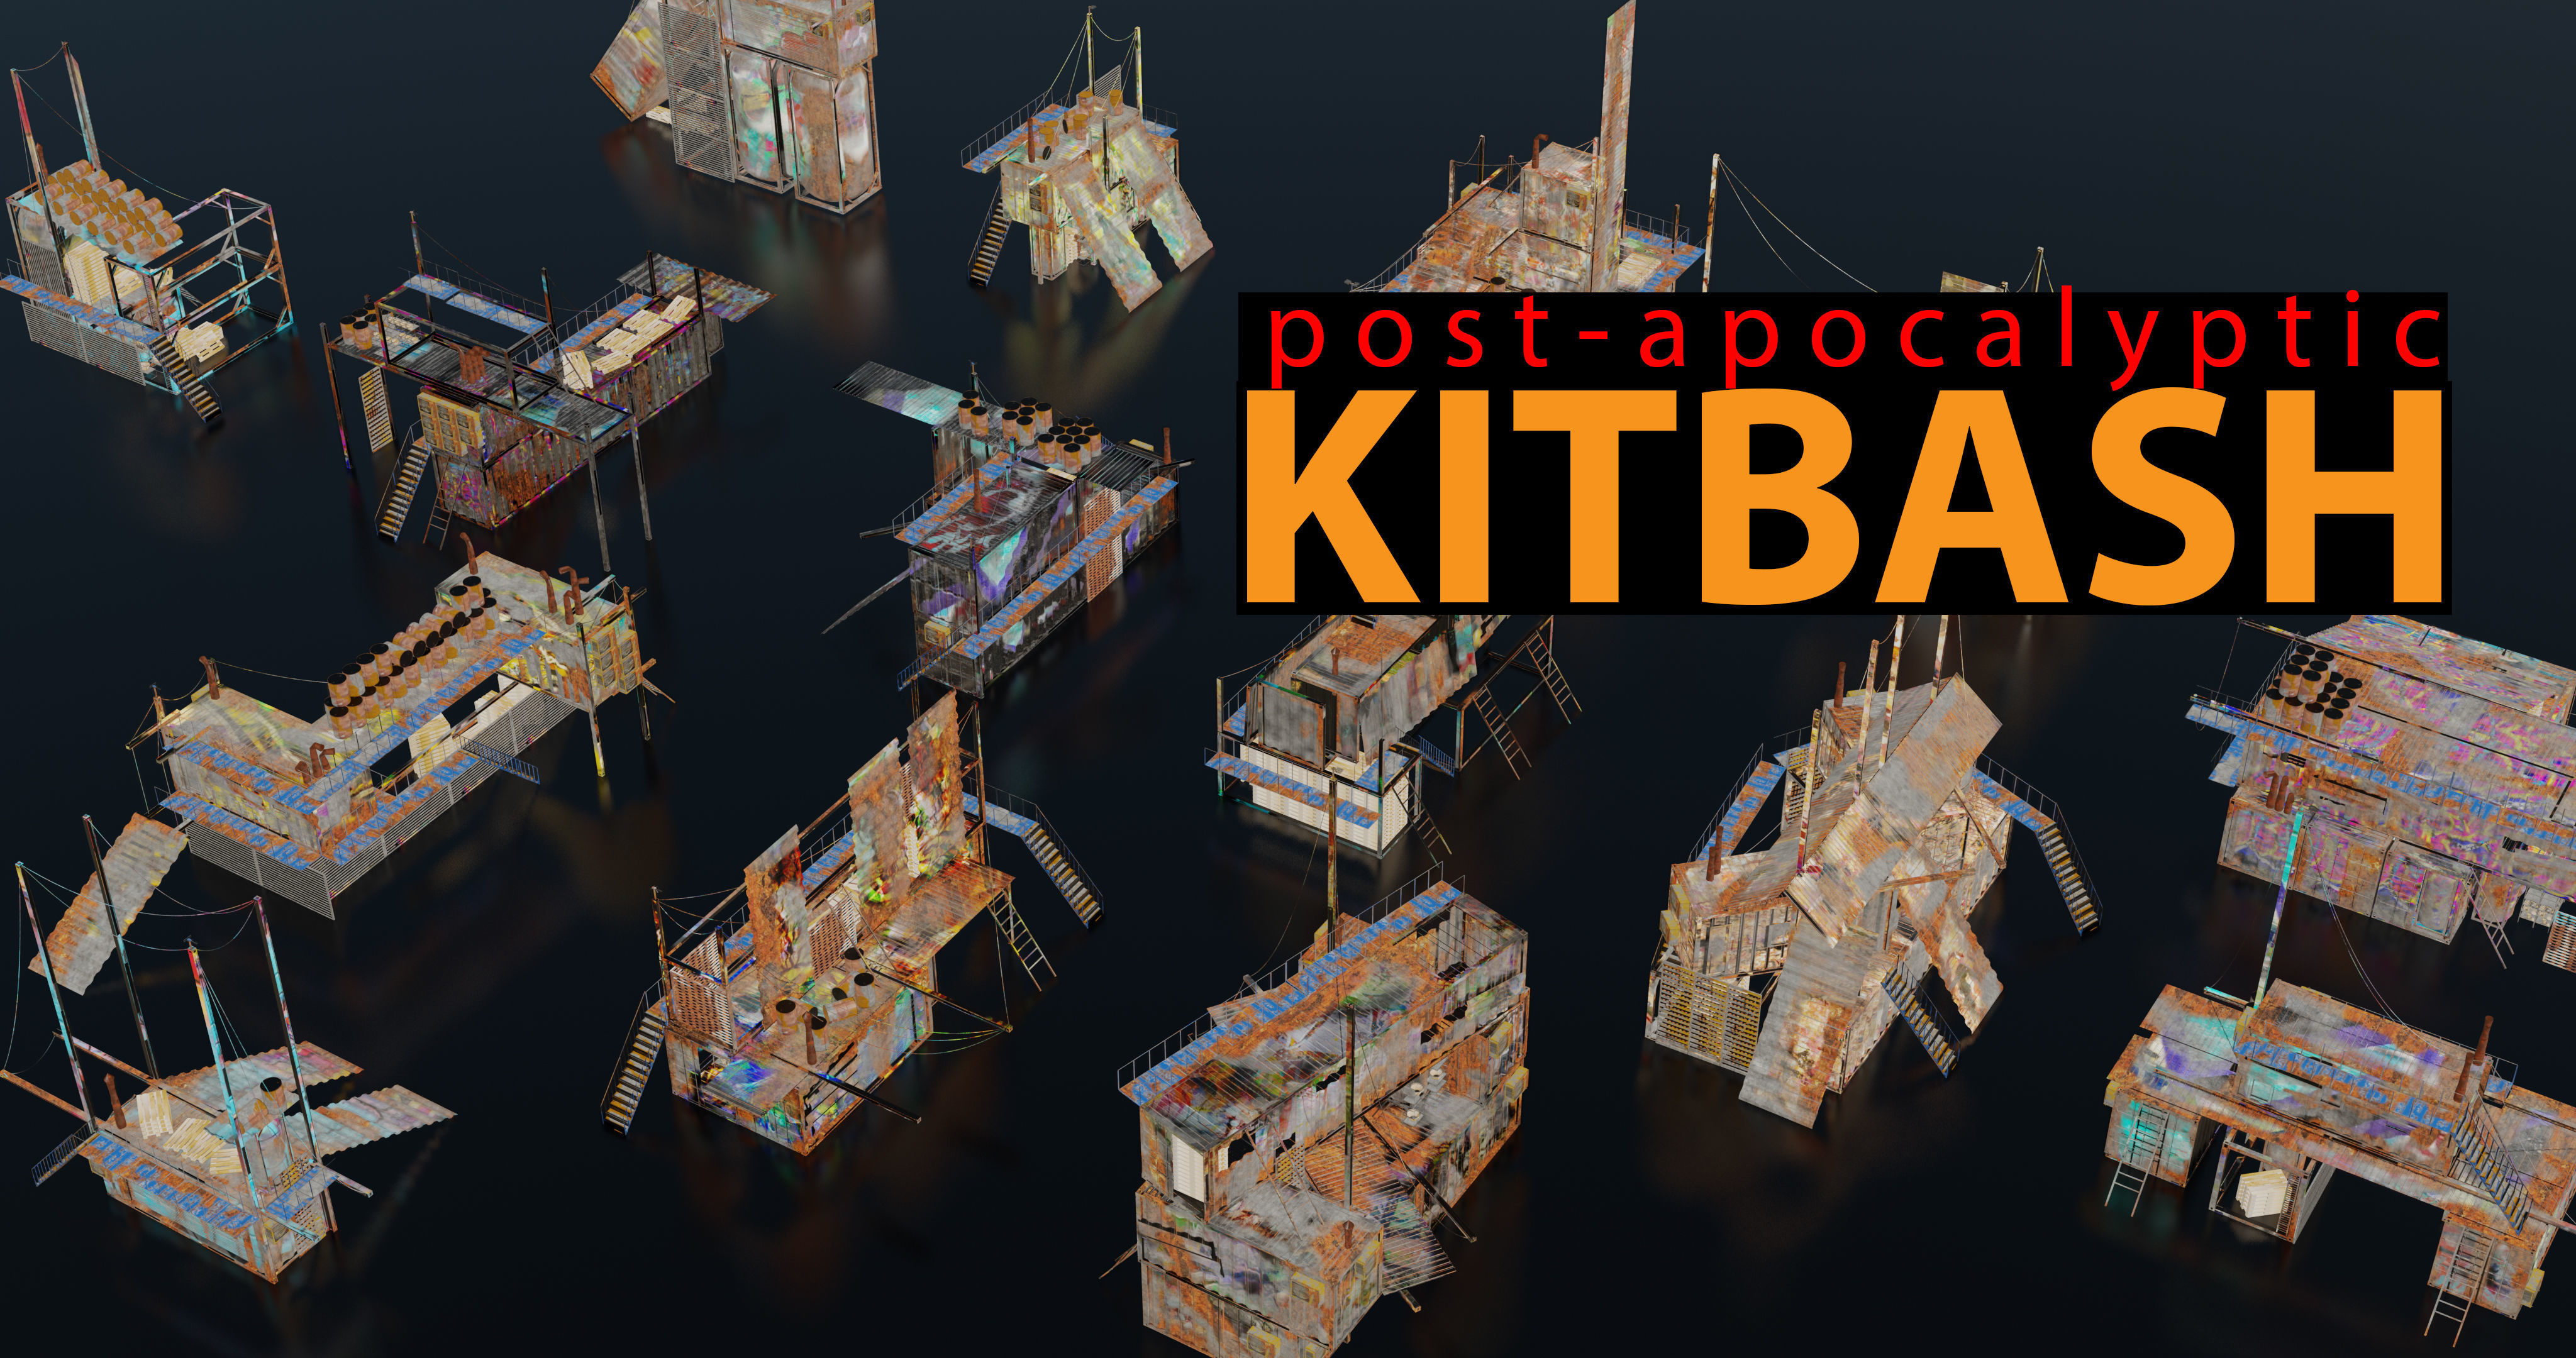 Post-Apocalyptic Kitbash Shipping Container Themed 60 pieces